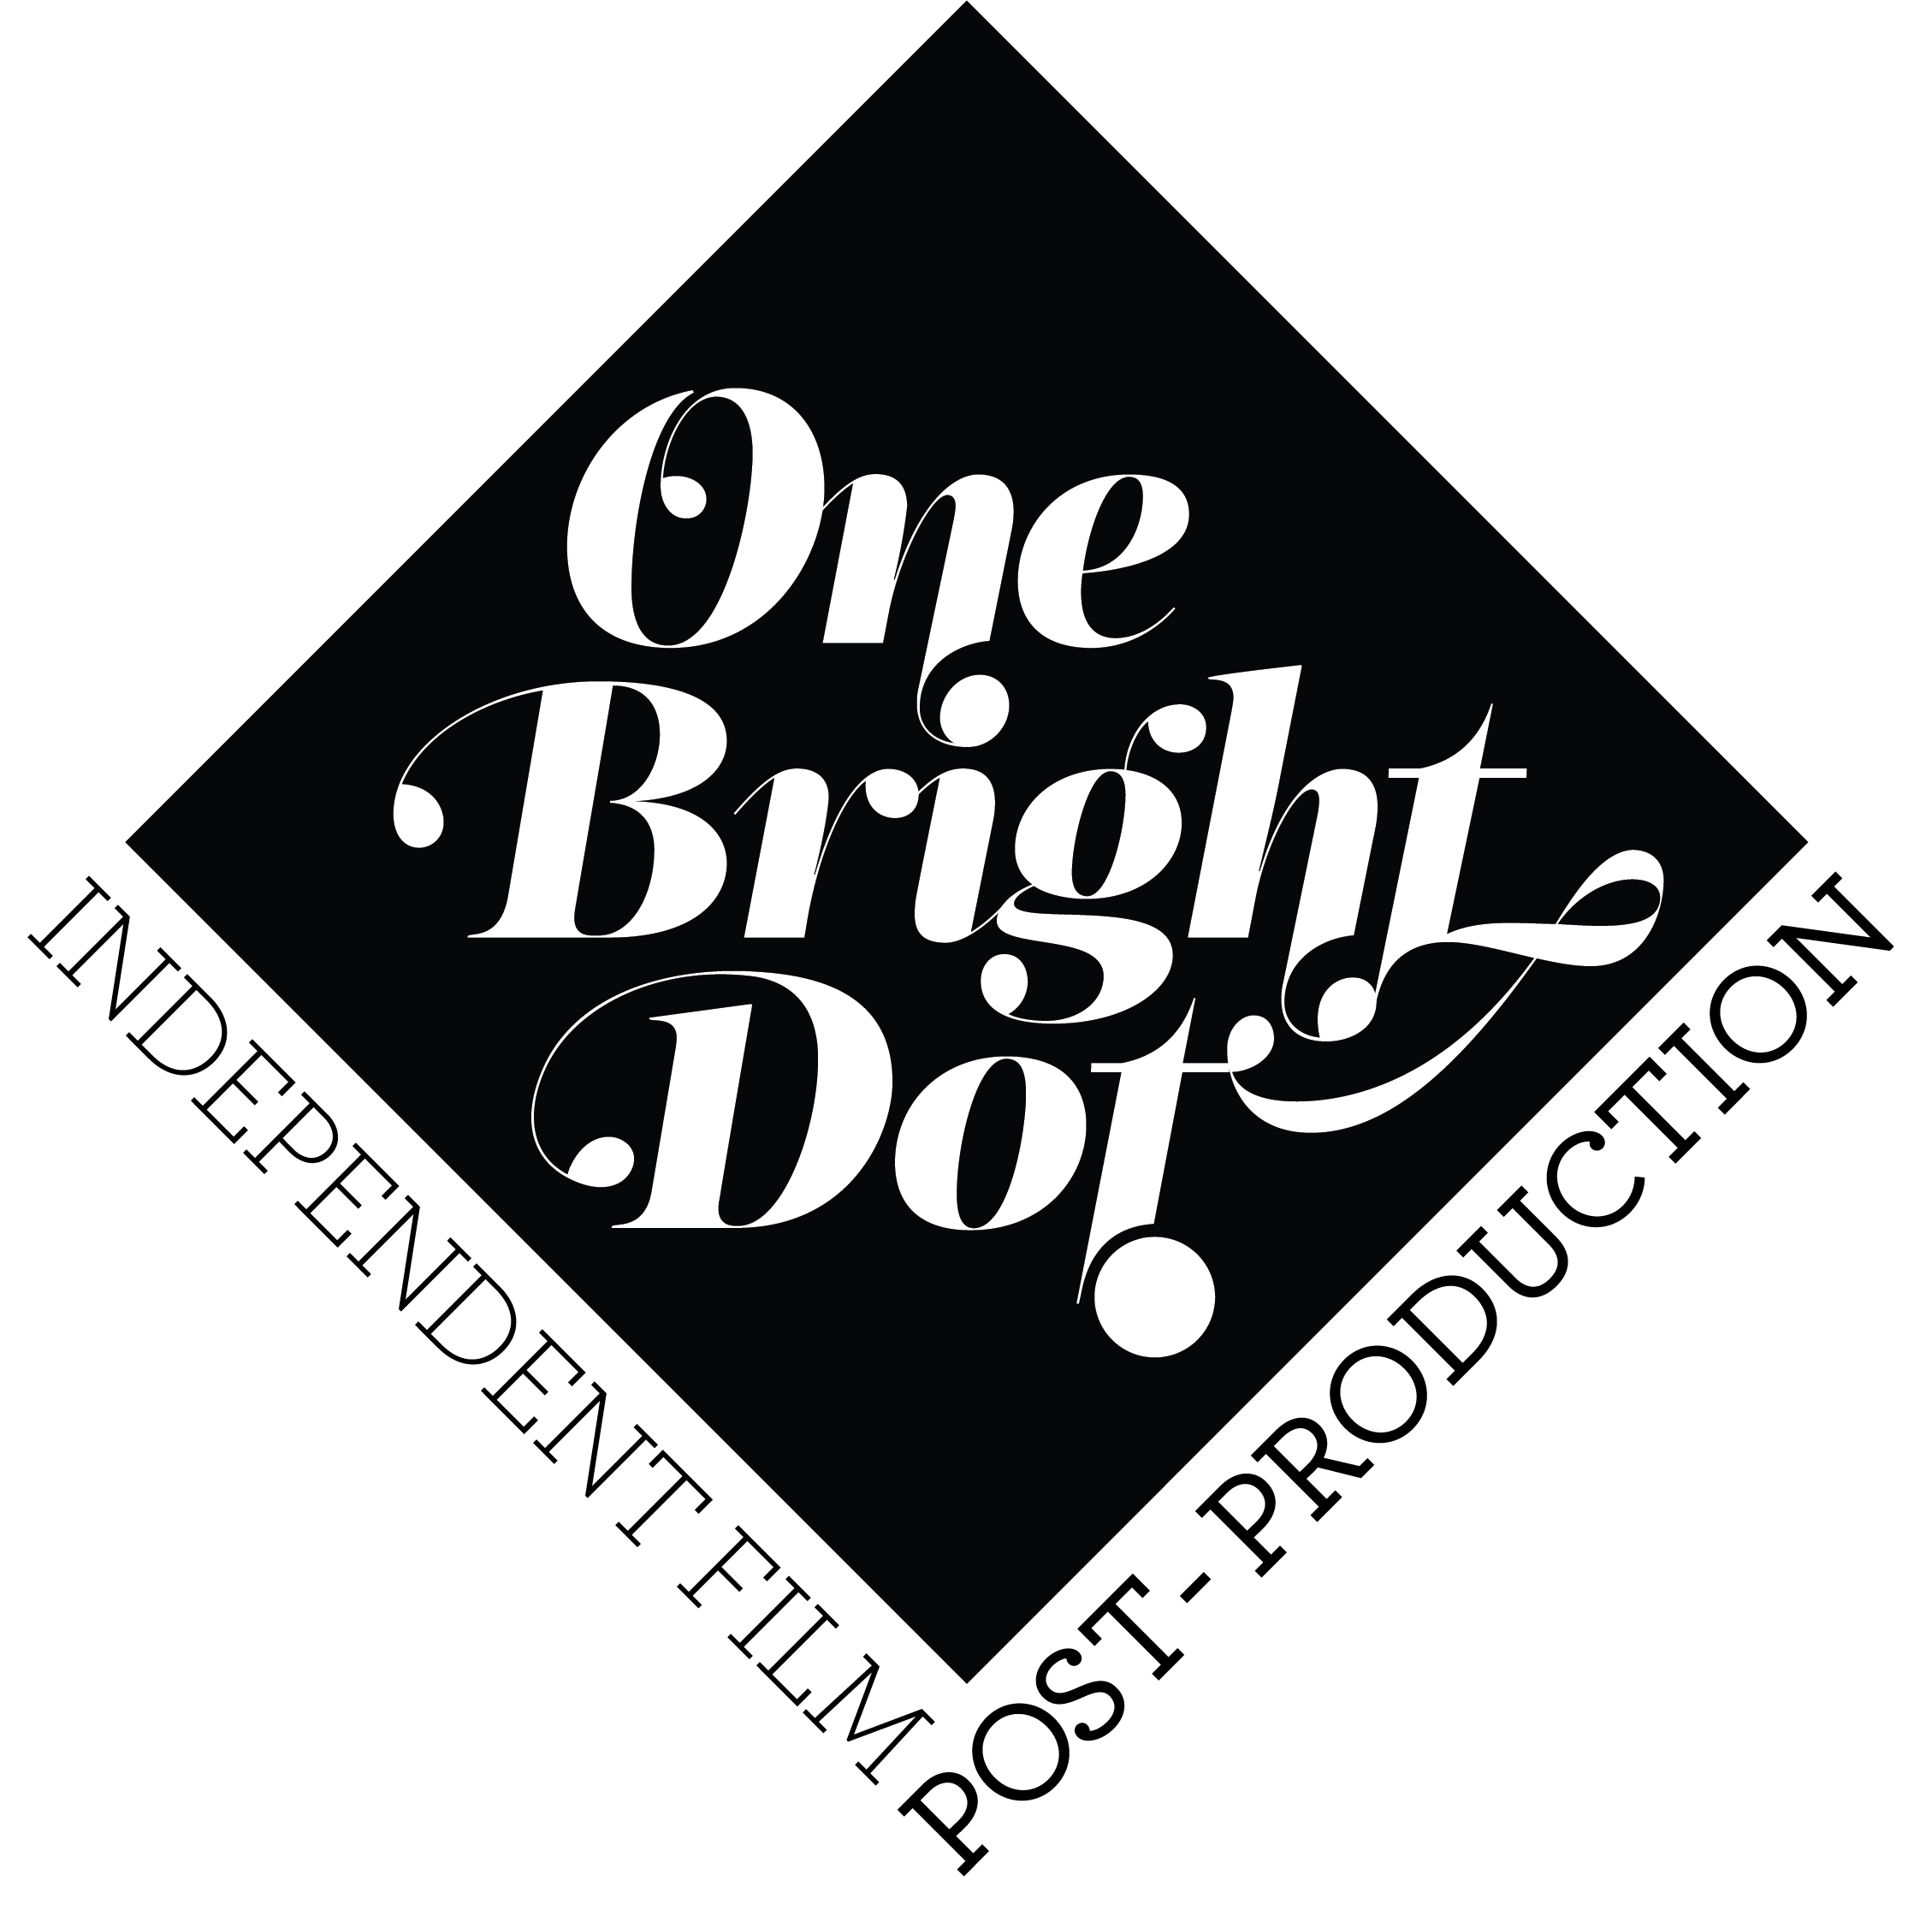 One Bright Dot